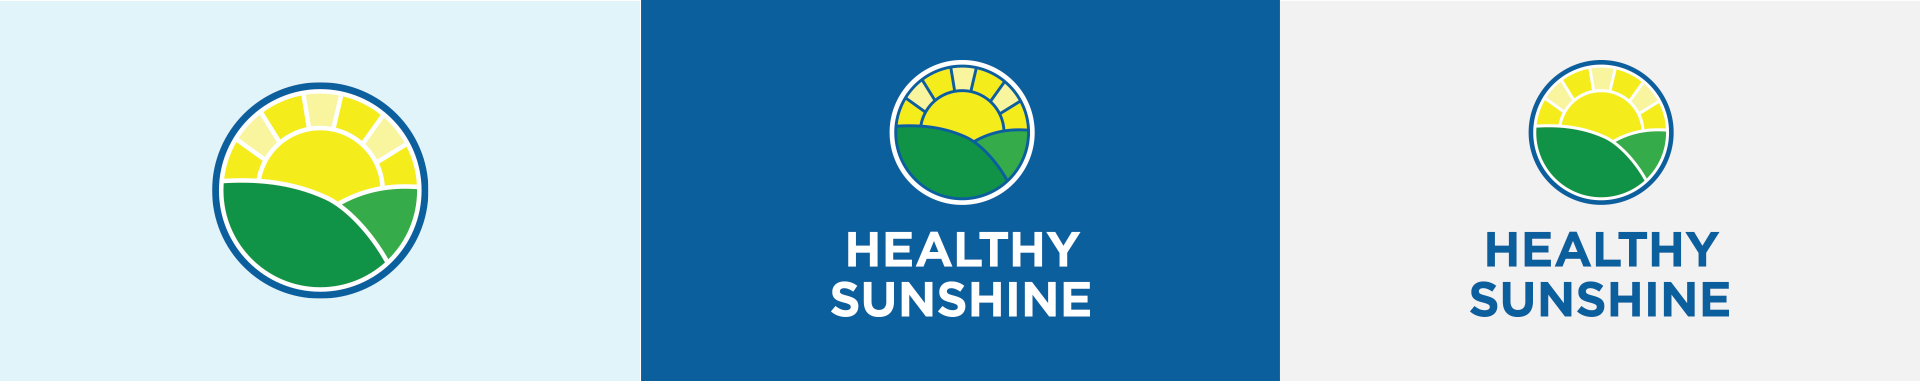 Vertical orientation of Healthy Sunshine logos on different color backgrounds and an icon version